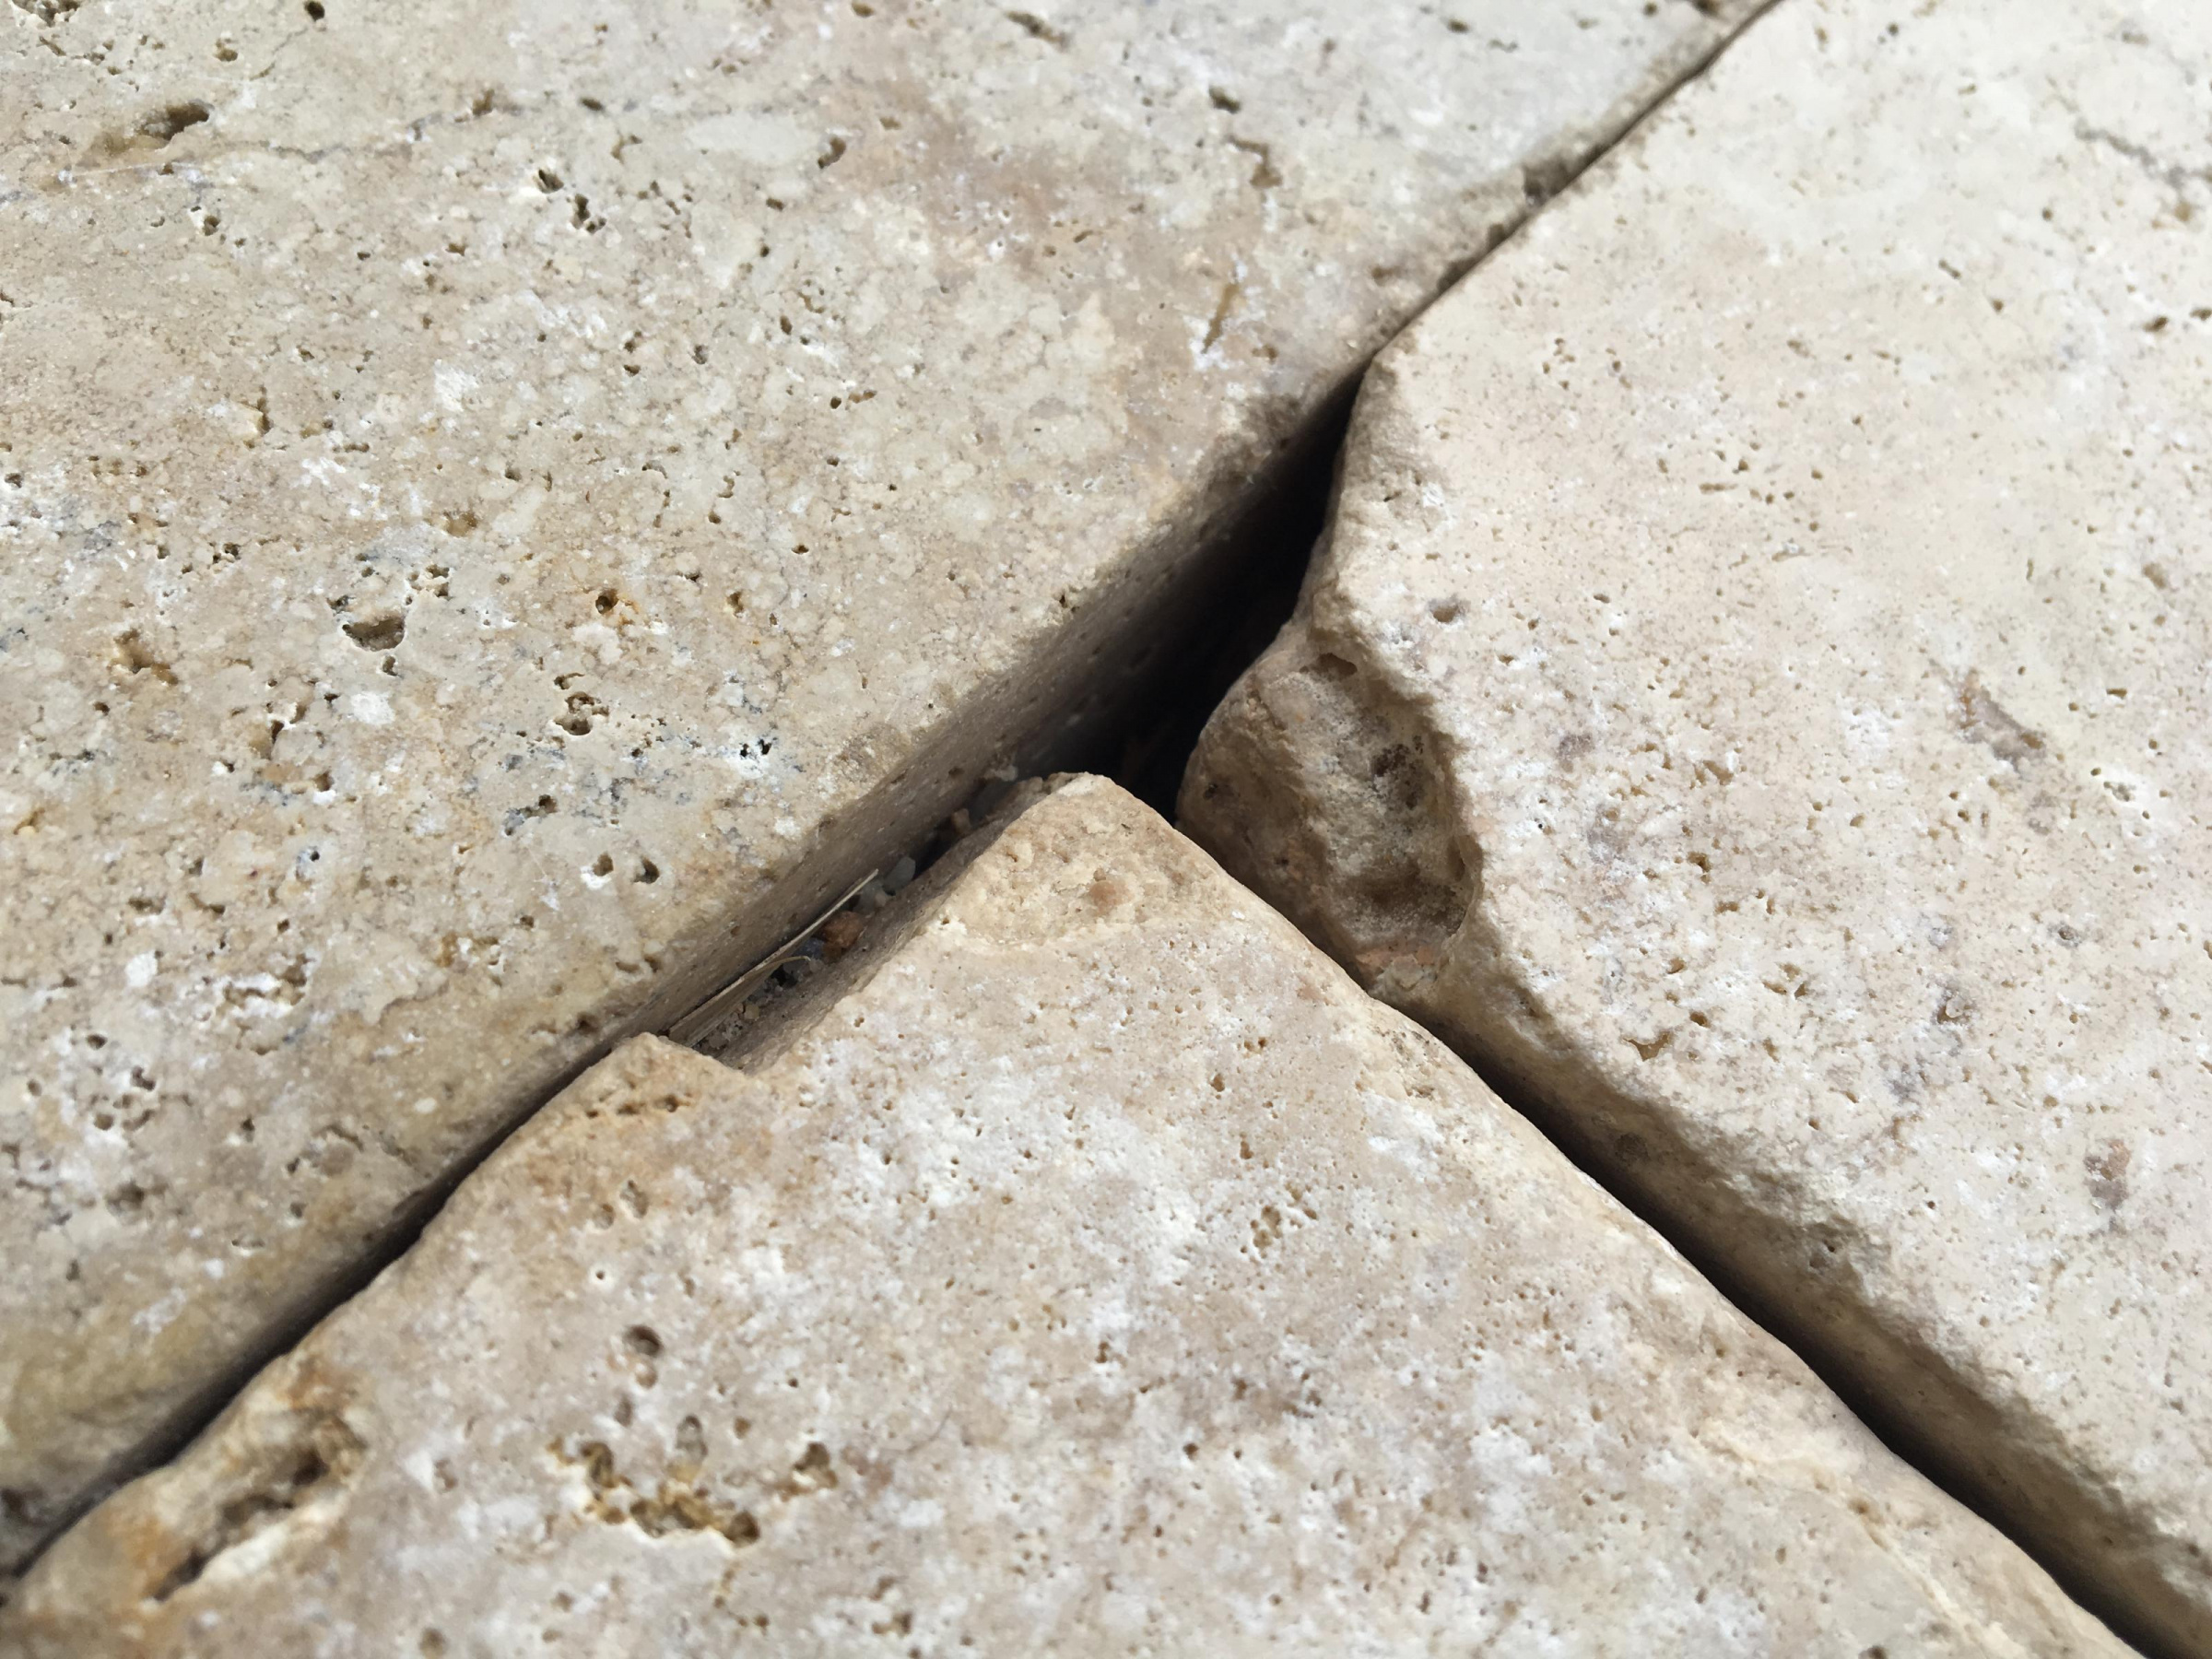 Polymetric grout color for pecan tumbled travertine-image_1555280306206.jpg